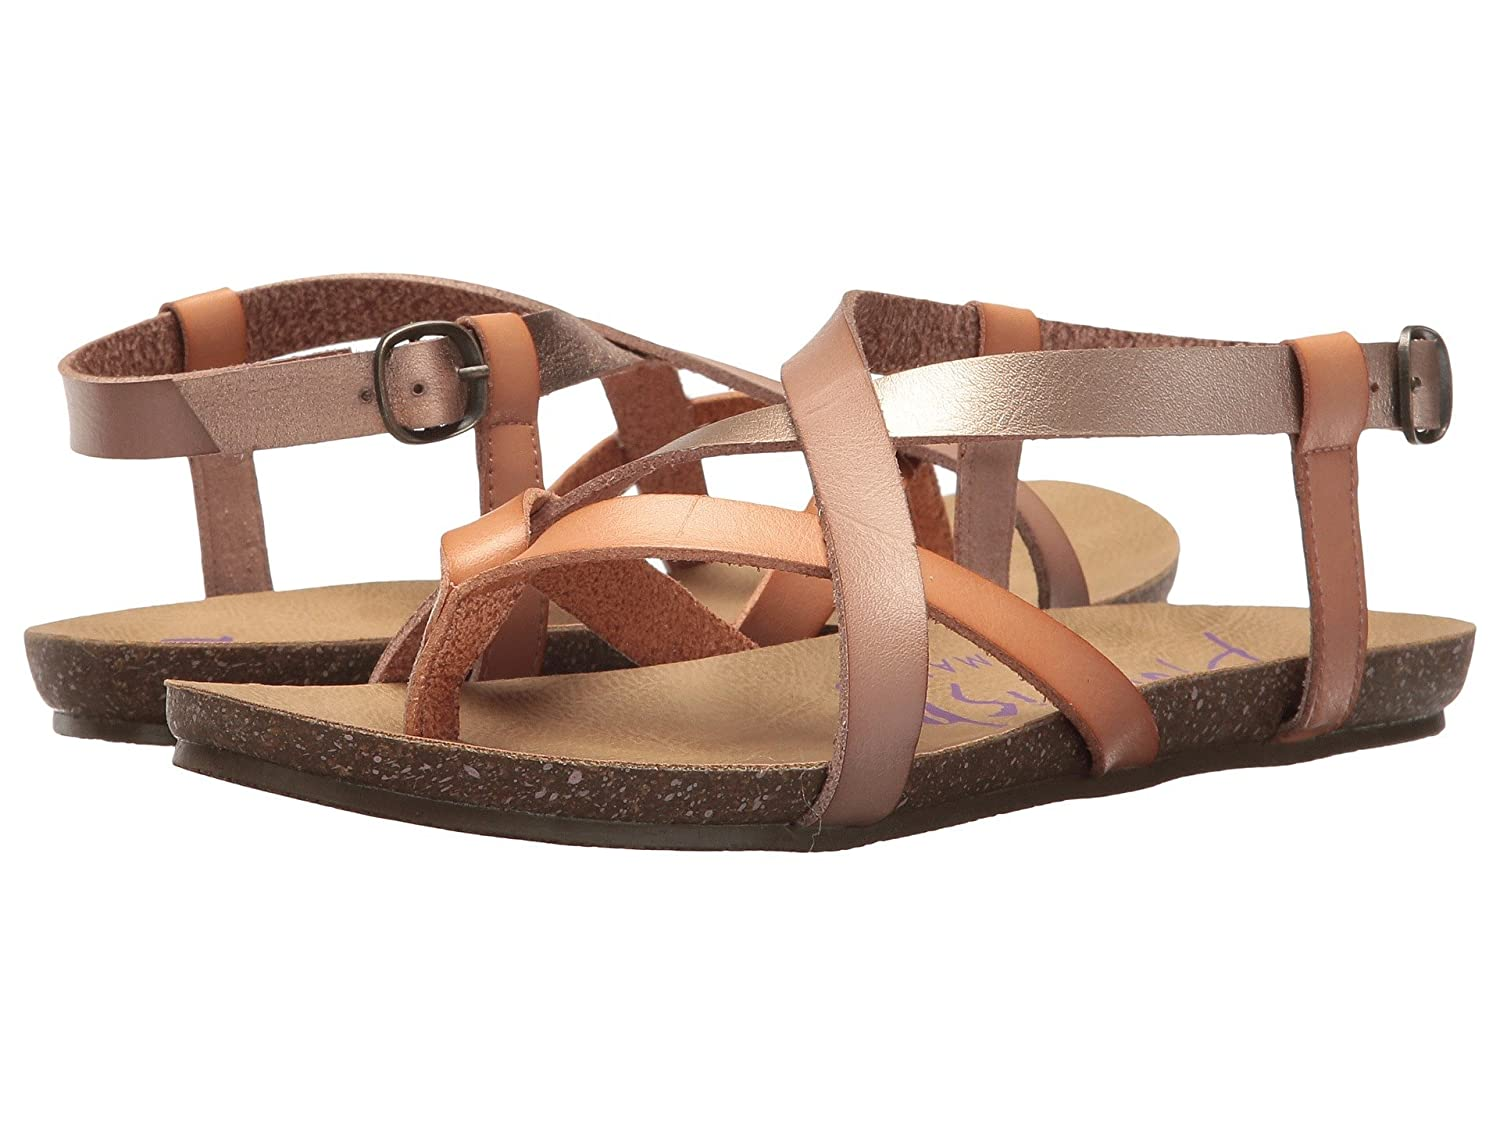 Blowfish Women's Granola Fisherman Sandal B07FCJWLG6 39-40 M EU / 9 B(M) US|Blonde/Pearl Rose Gold